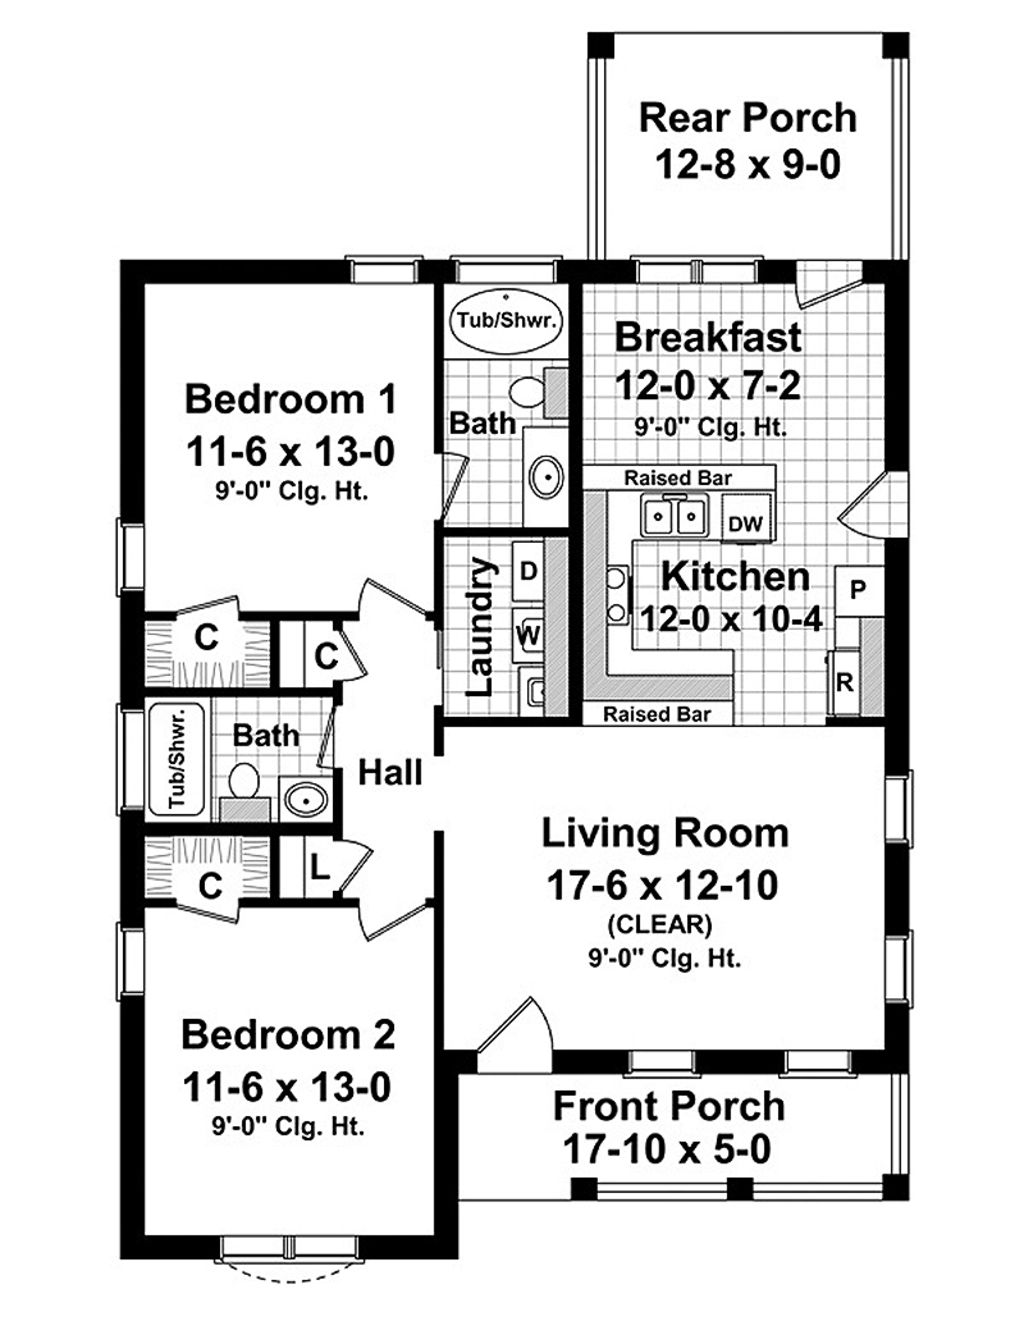 Cottage style house plan 2 beds baths 1100 sq ft for One story retirement house plans